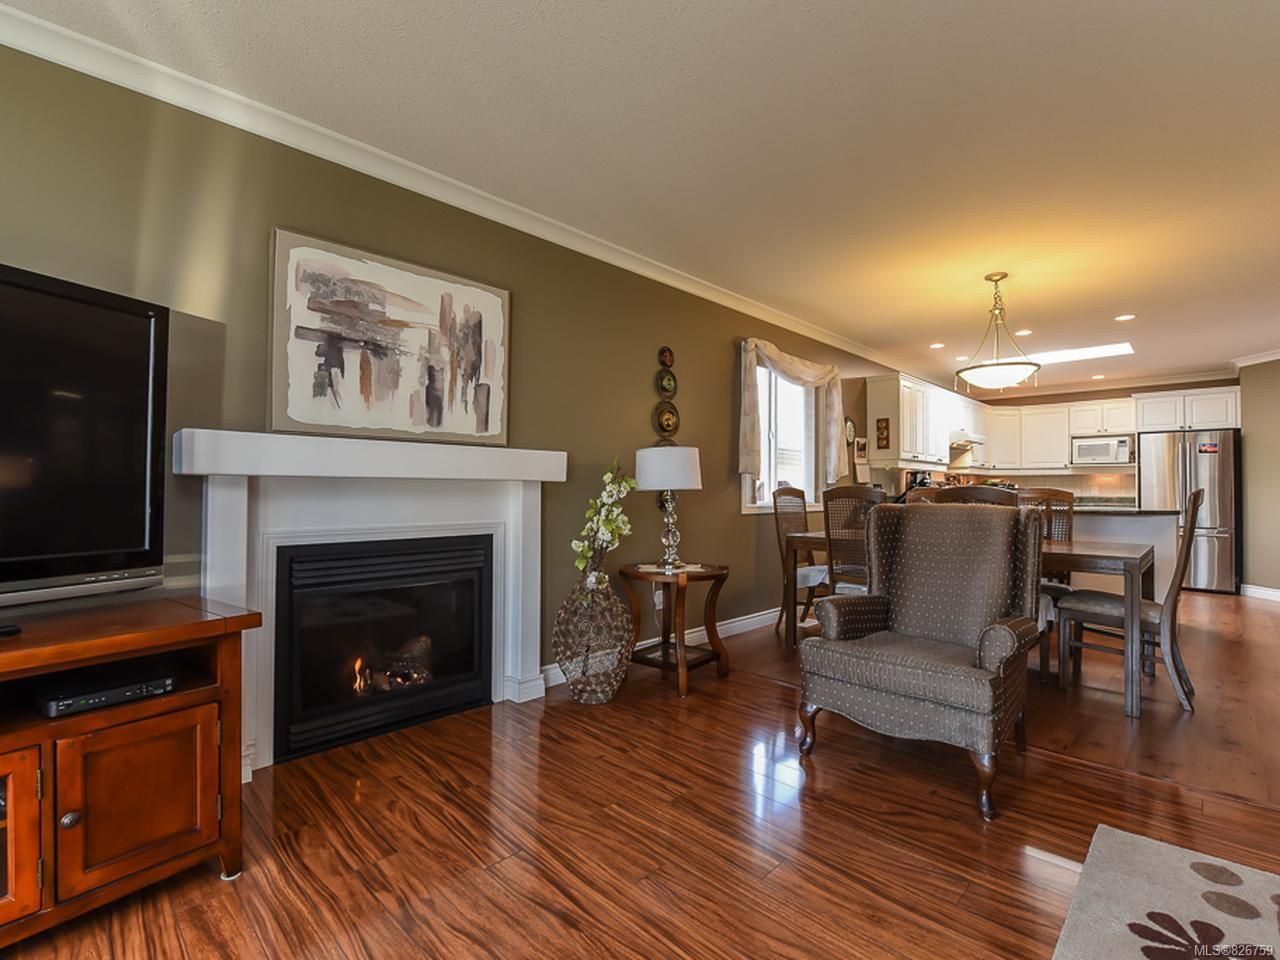 Photo 5: Photos: 2165 Stirling Cres in COURTENAY: CV Courtenay East House for sale (Comox Valley)  : MLS®# 826759